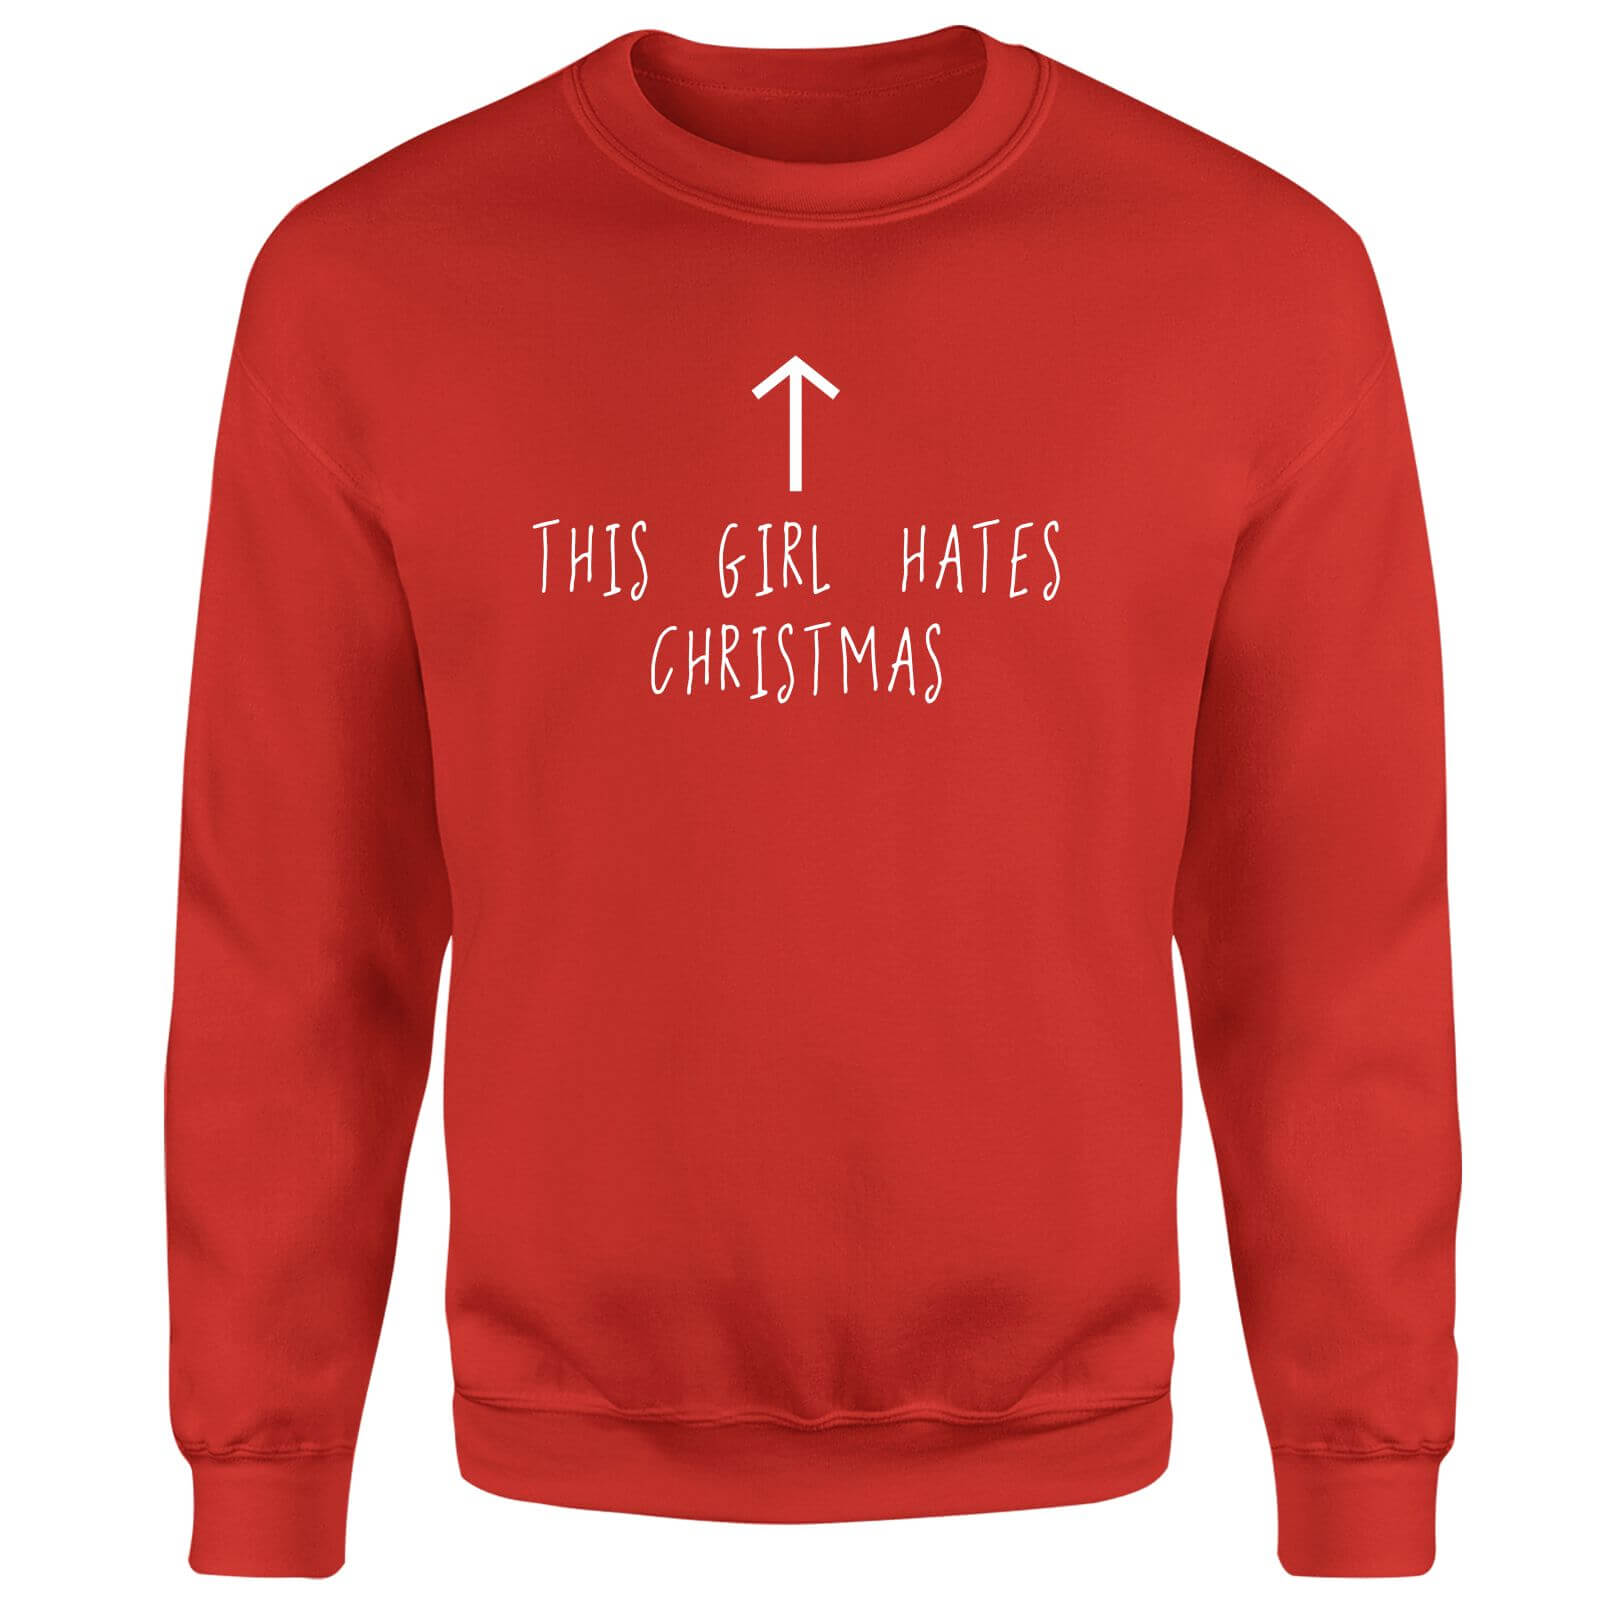 This Girl Hates Christmas Sweatshirt - Red